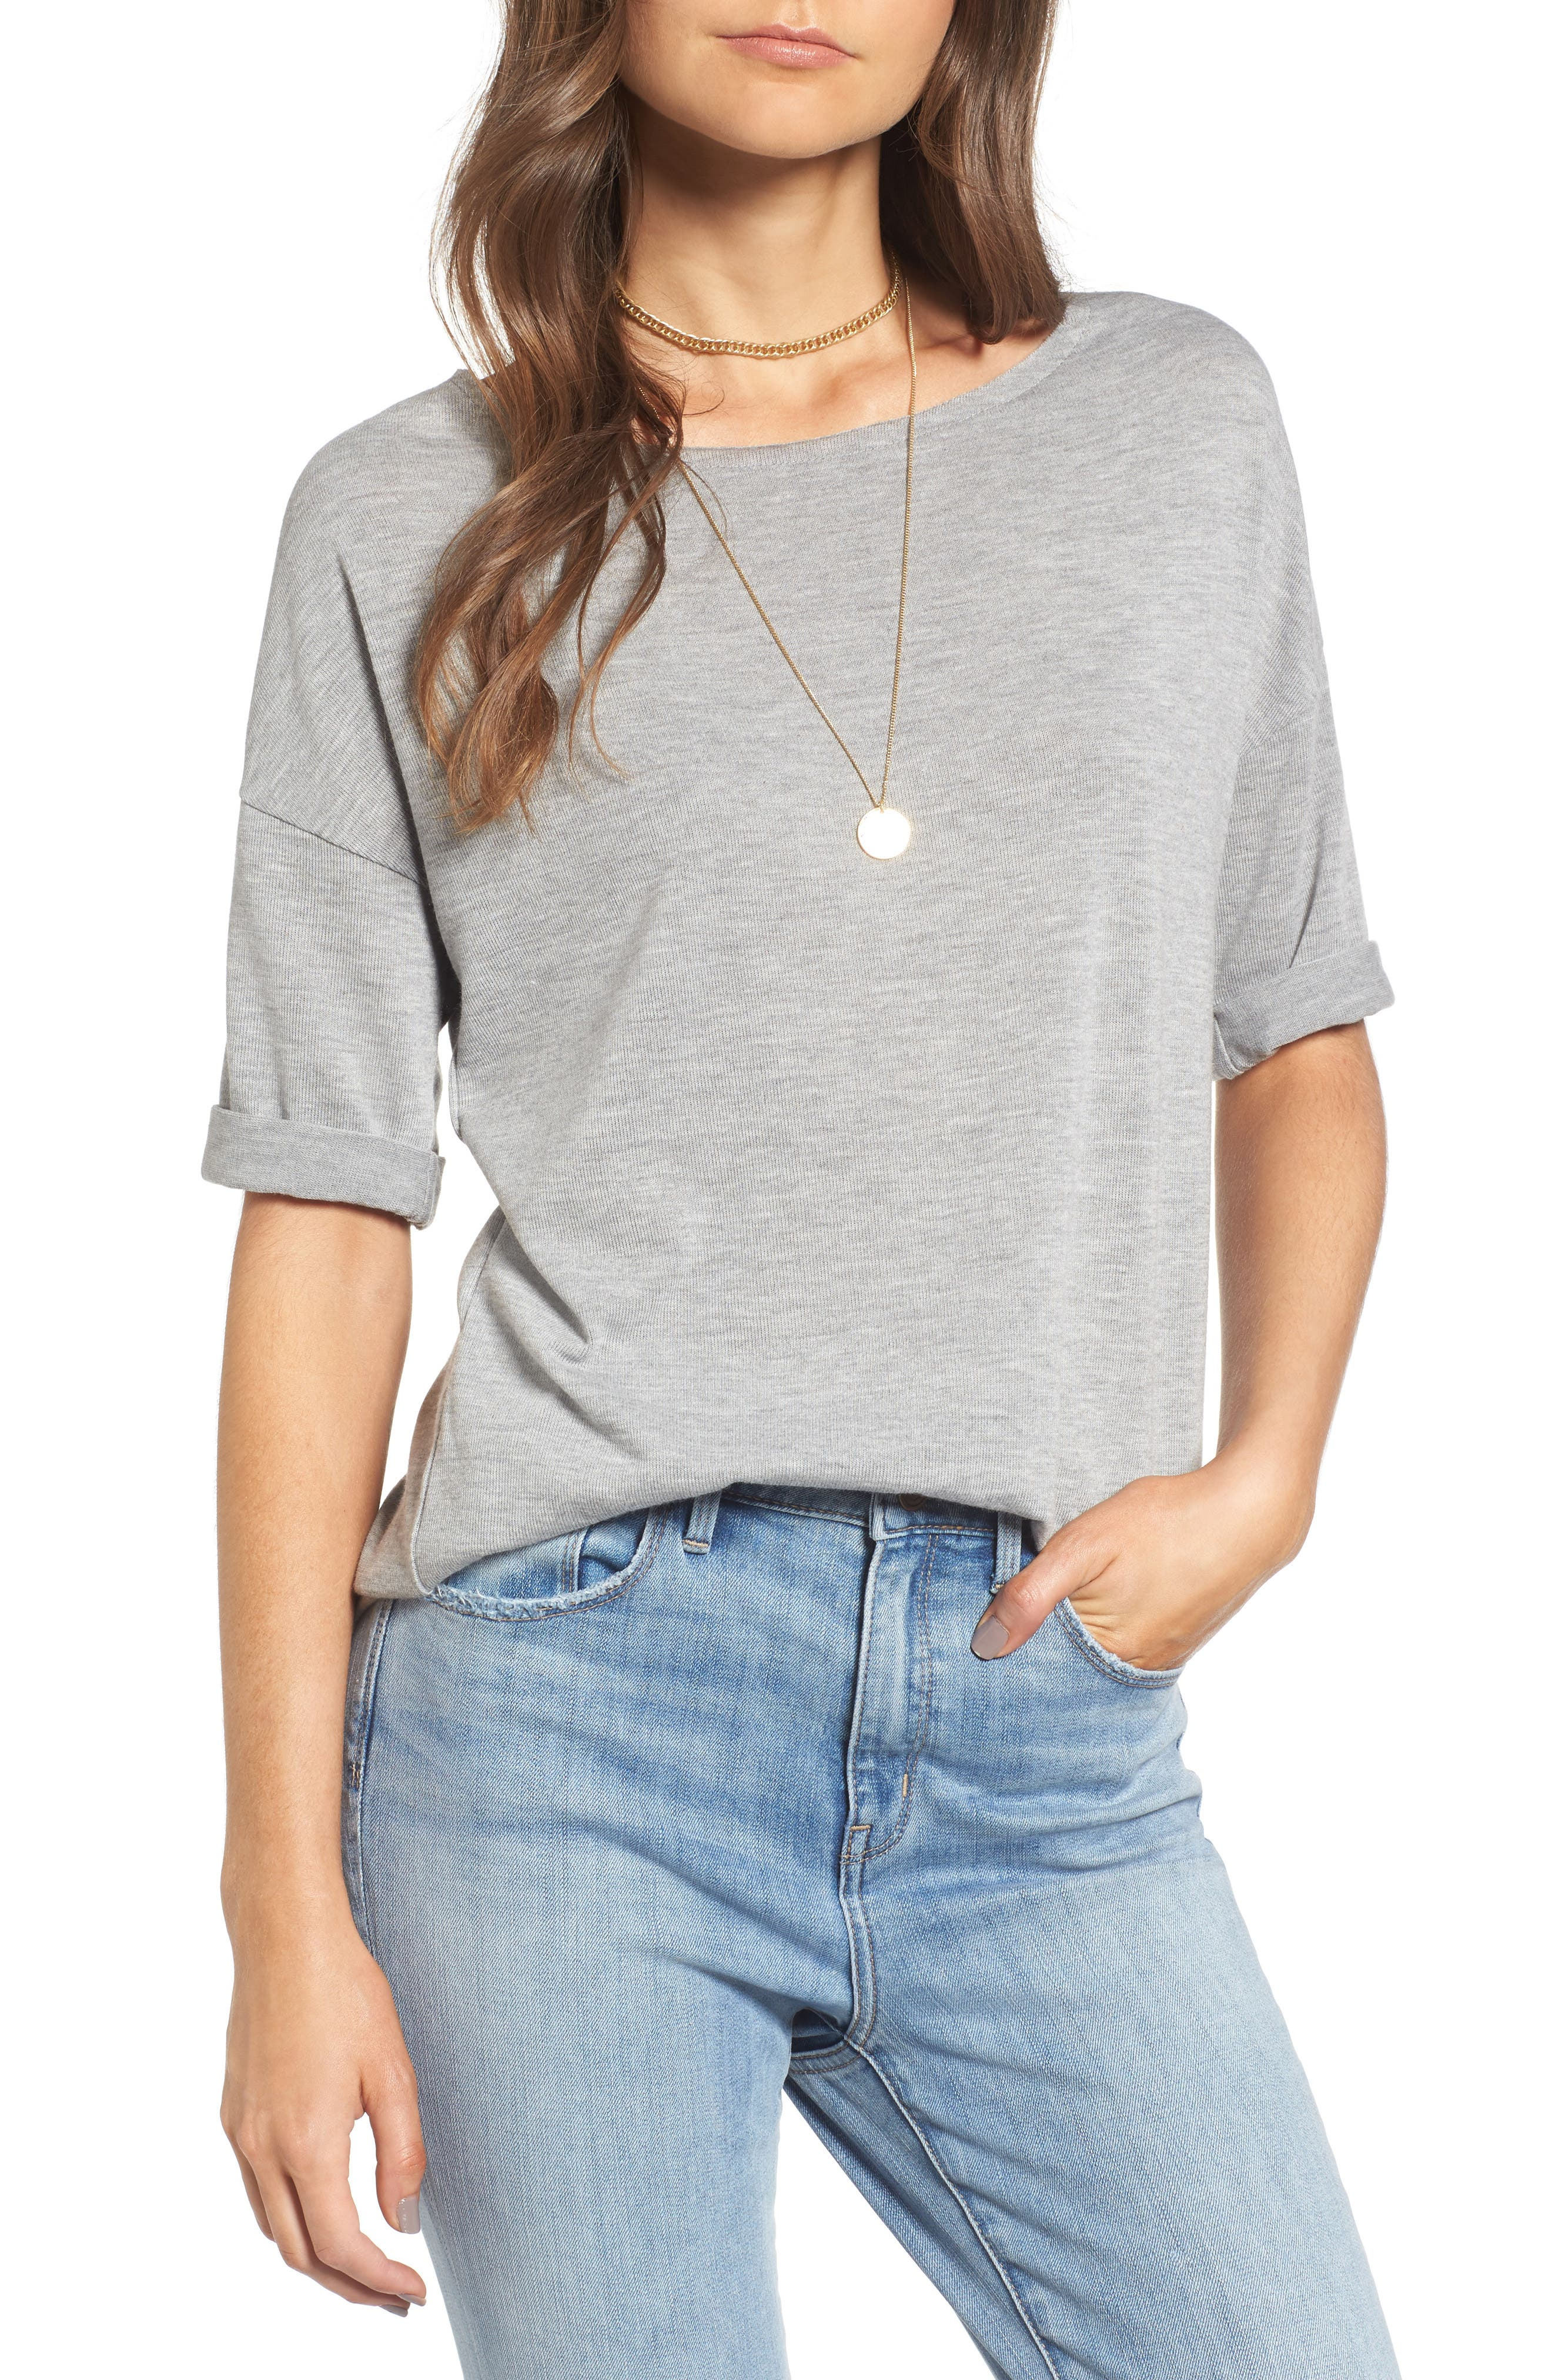 x Something Navy Easy Tee,                             Main thumbnail 1, color,                             Grey Heather